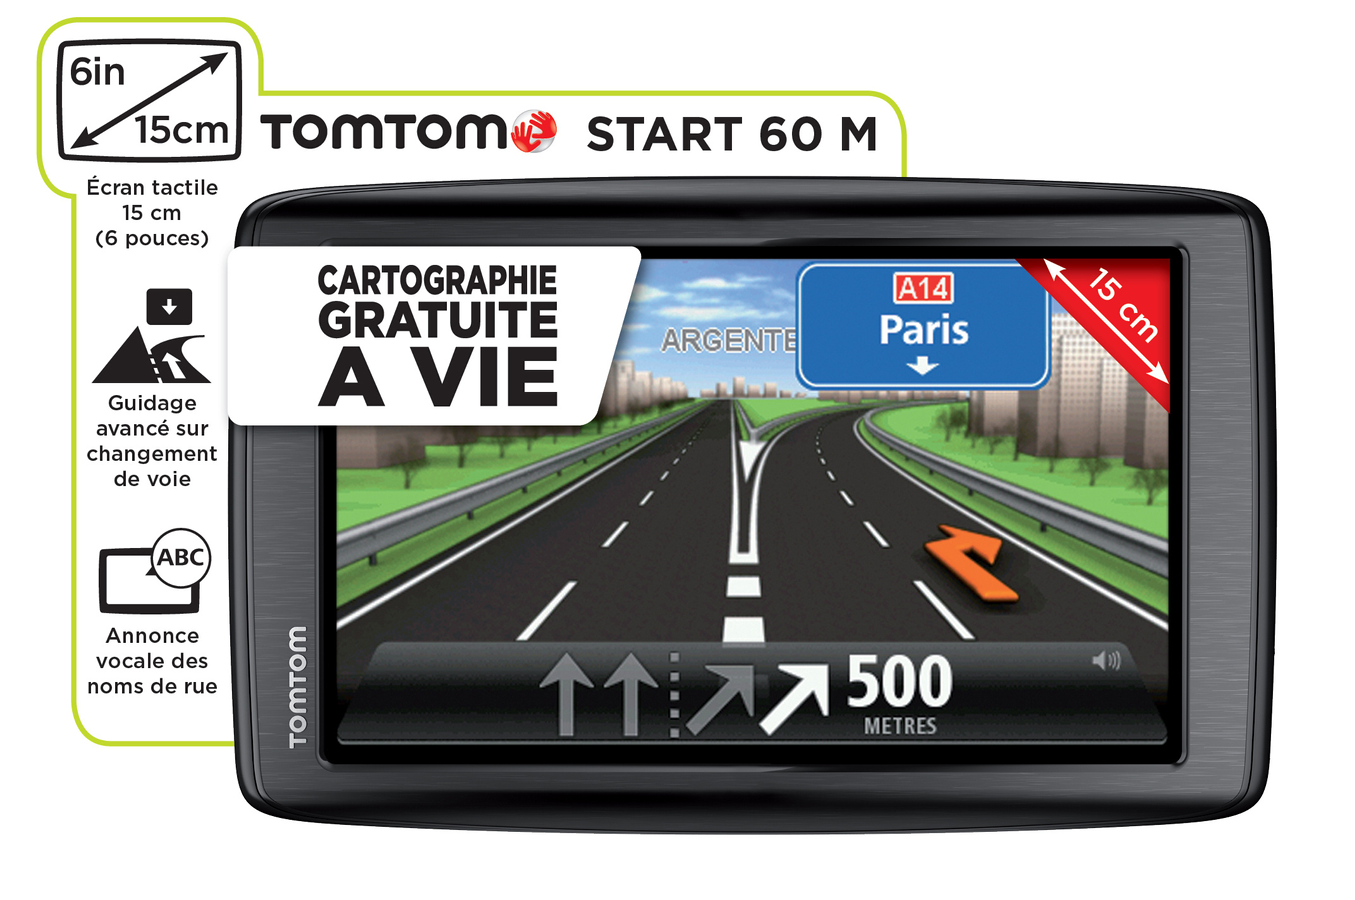 carte gps tomtom start gratuite. Black Bedroom Furniture Sets. Home Design Ideas